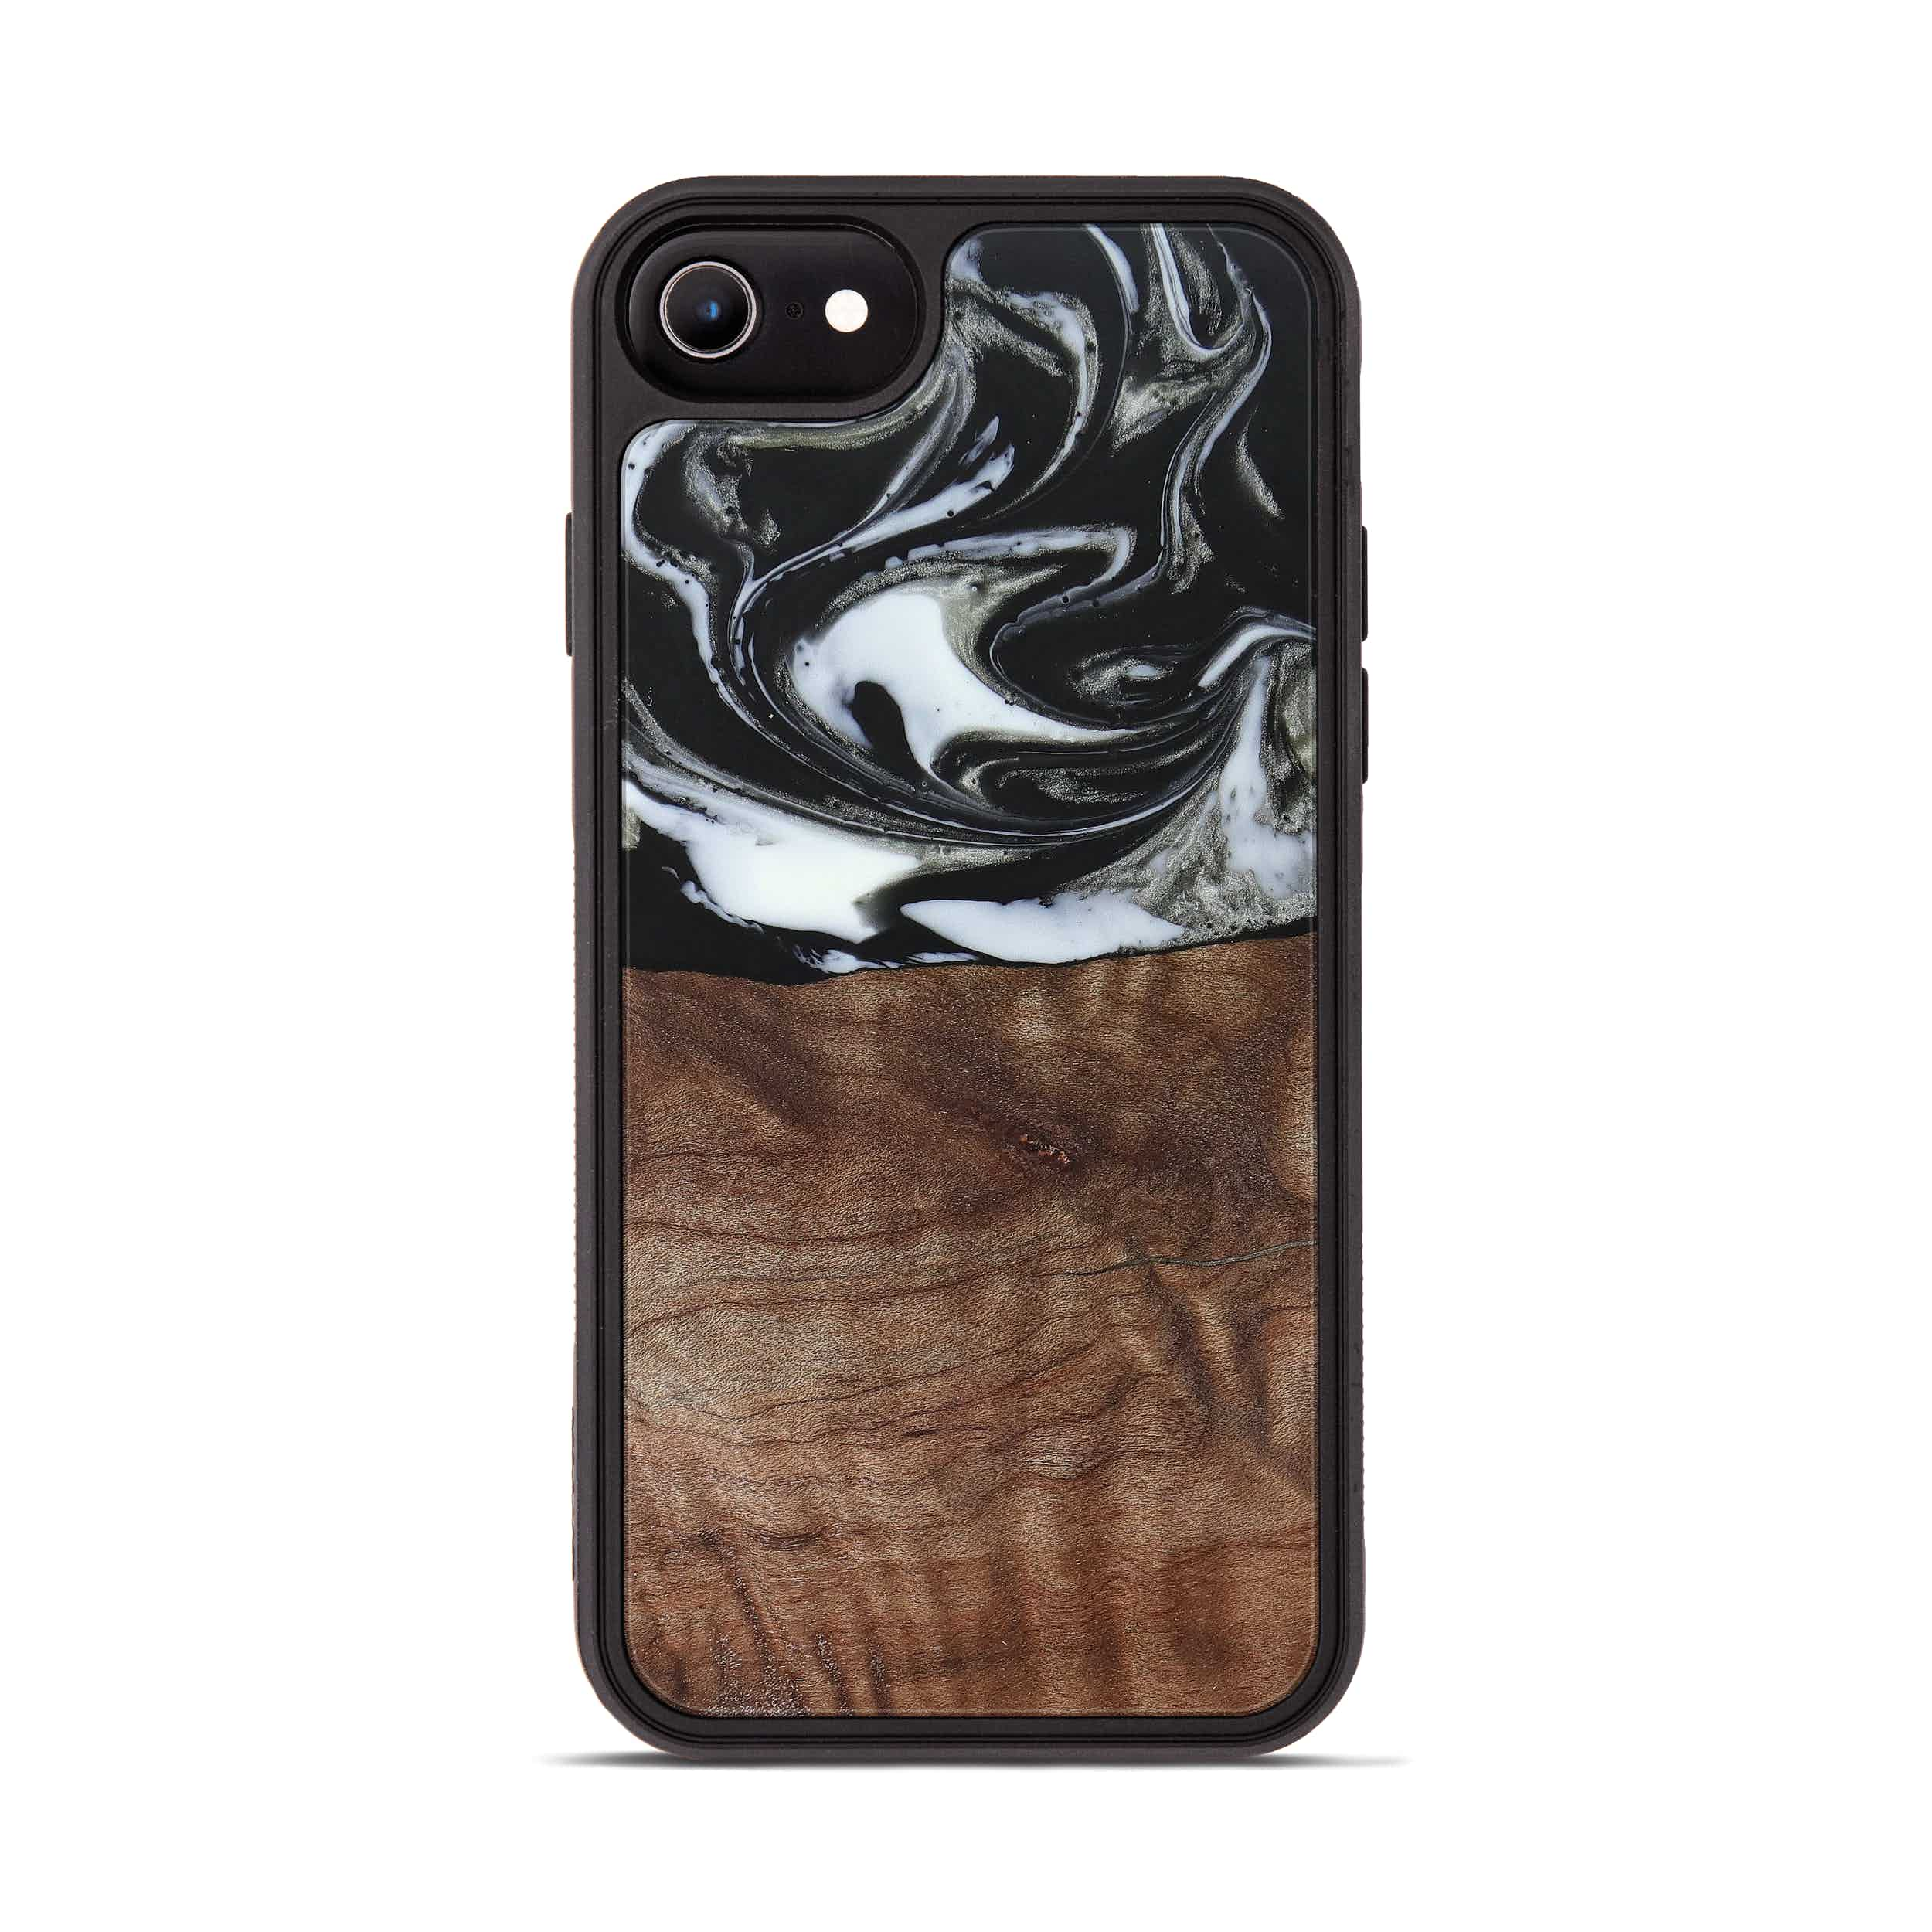 iPhone 8 Wood+Resin Phone Case - Issie (Black & White, 385924)